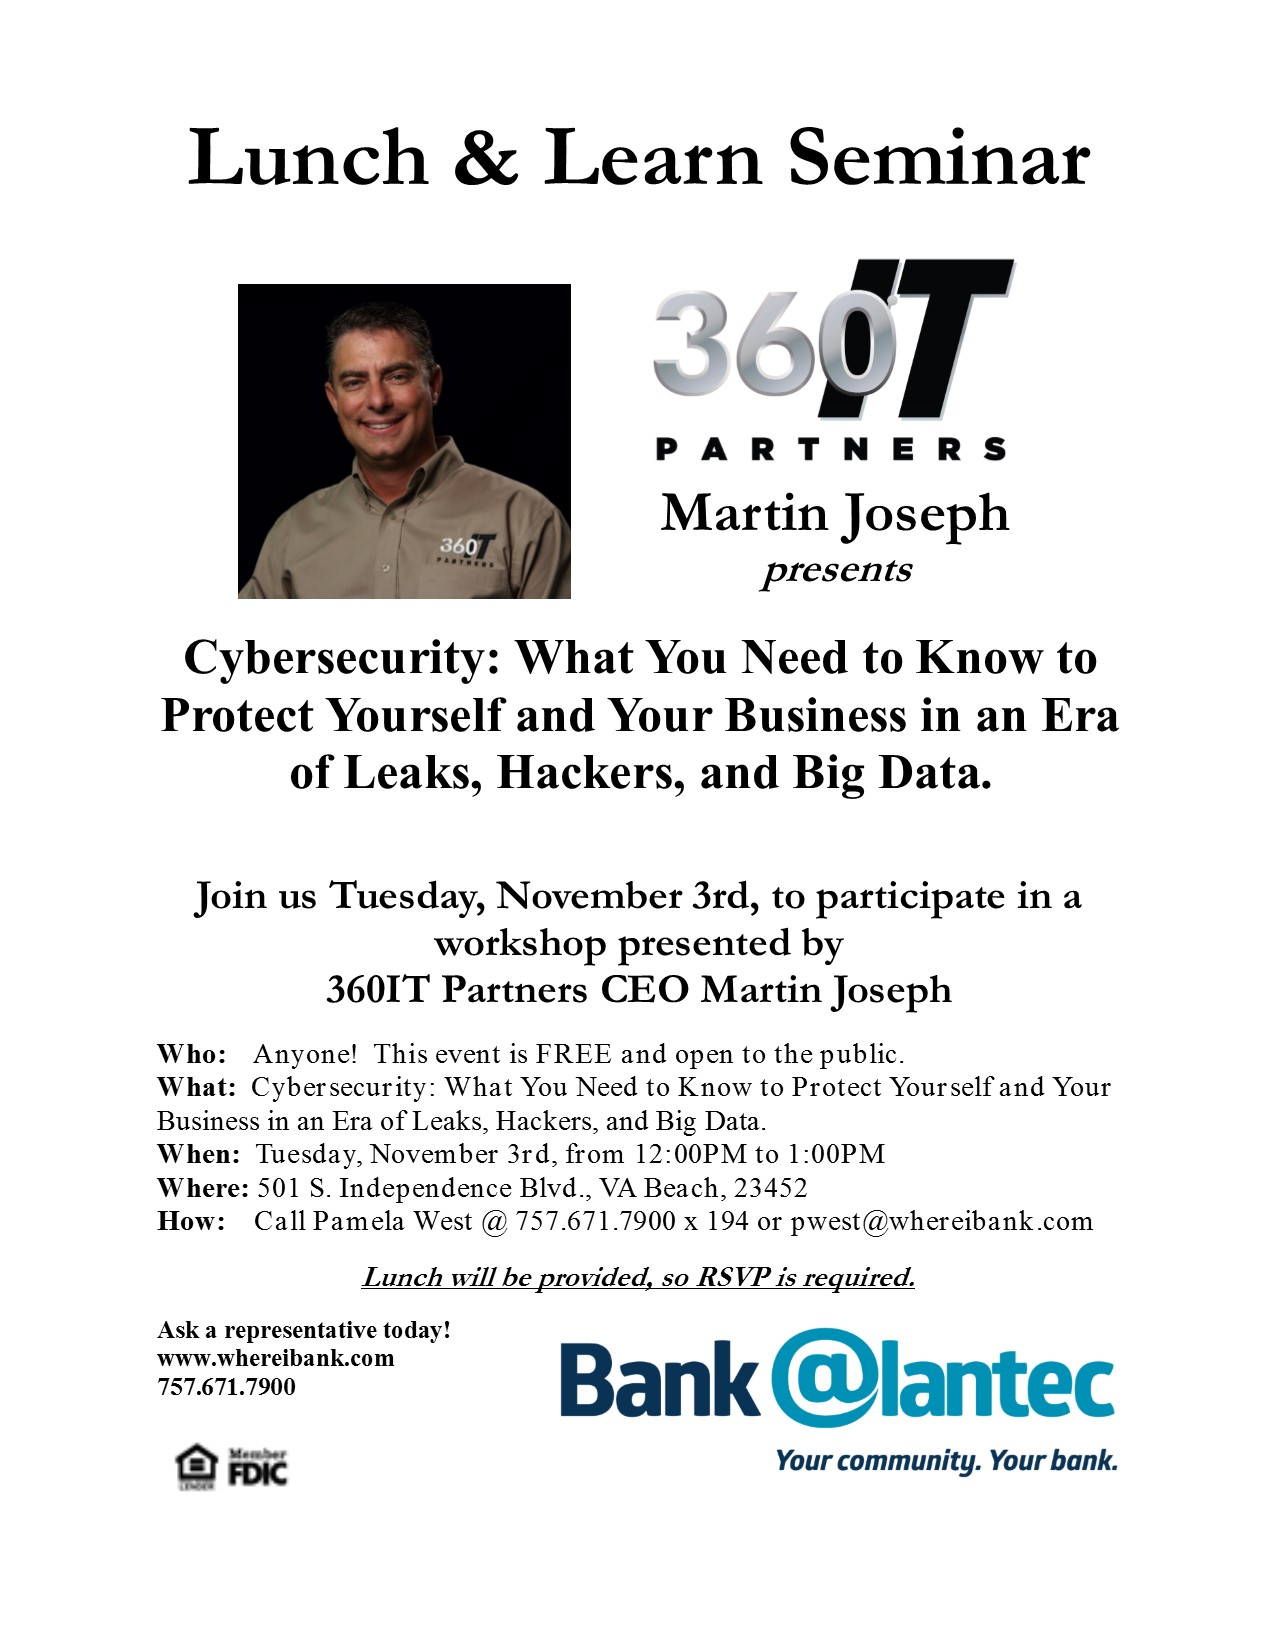 Bank @lantec & 360IT Lunch & Learn